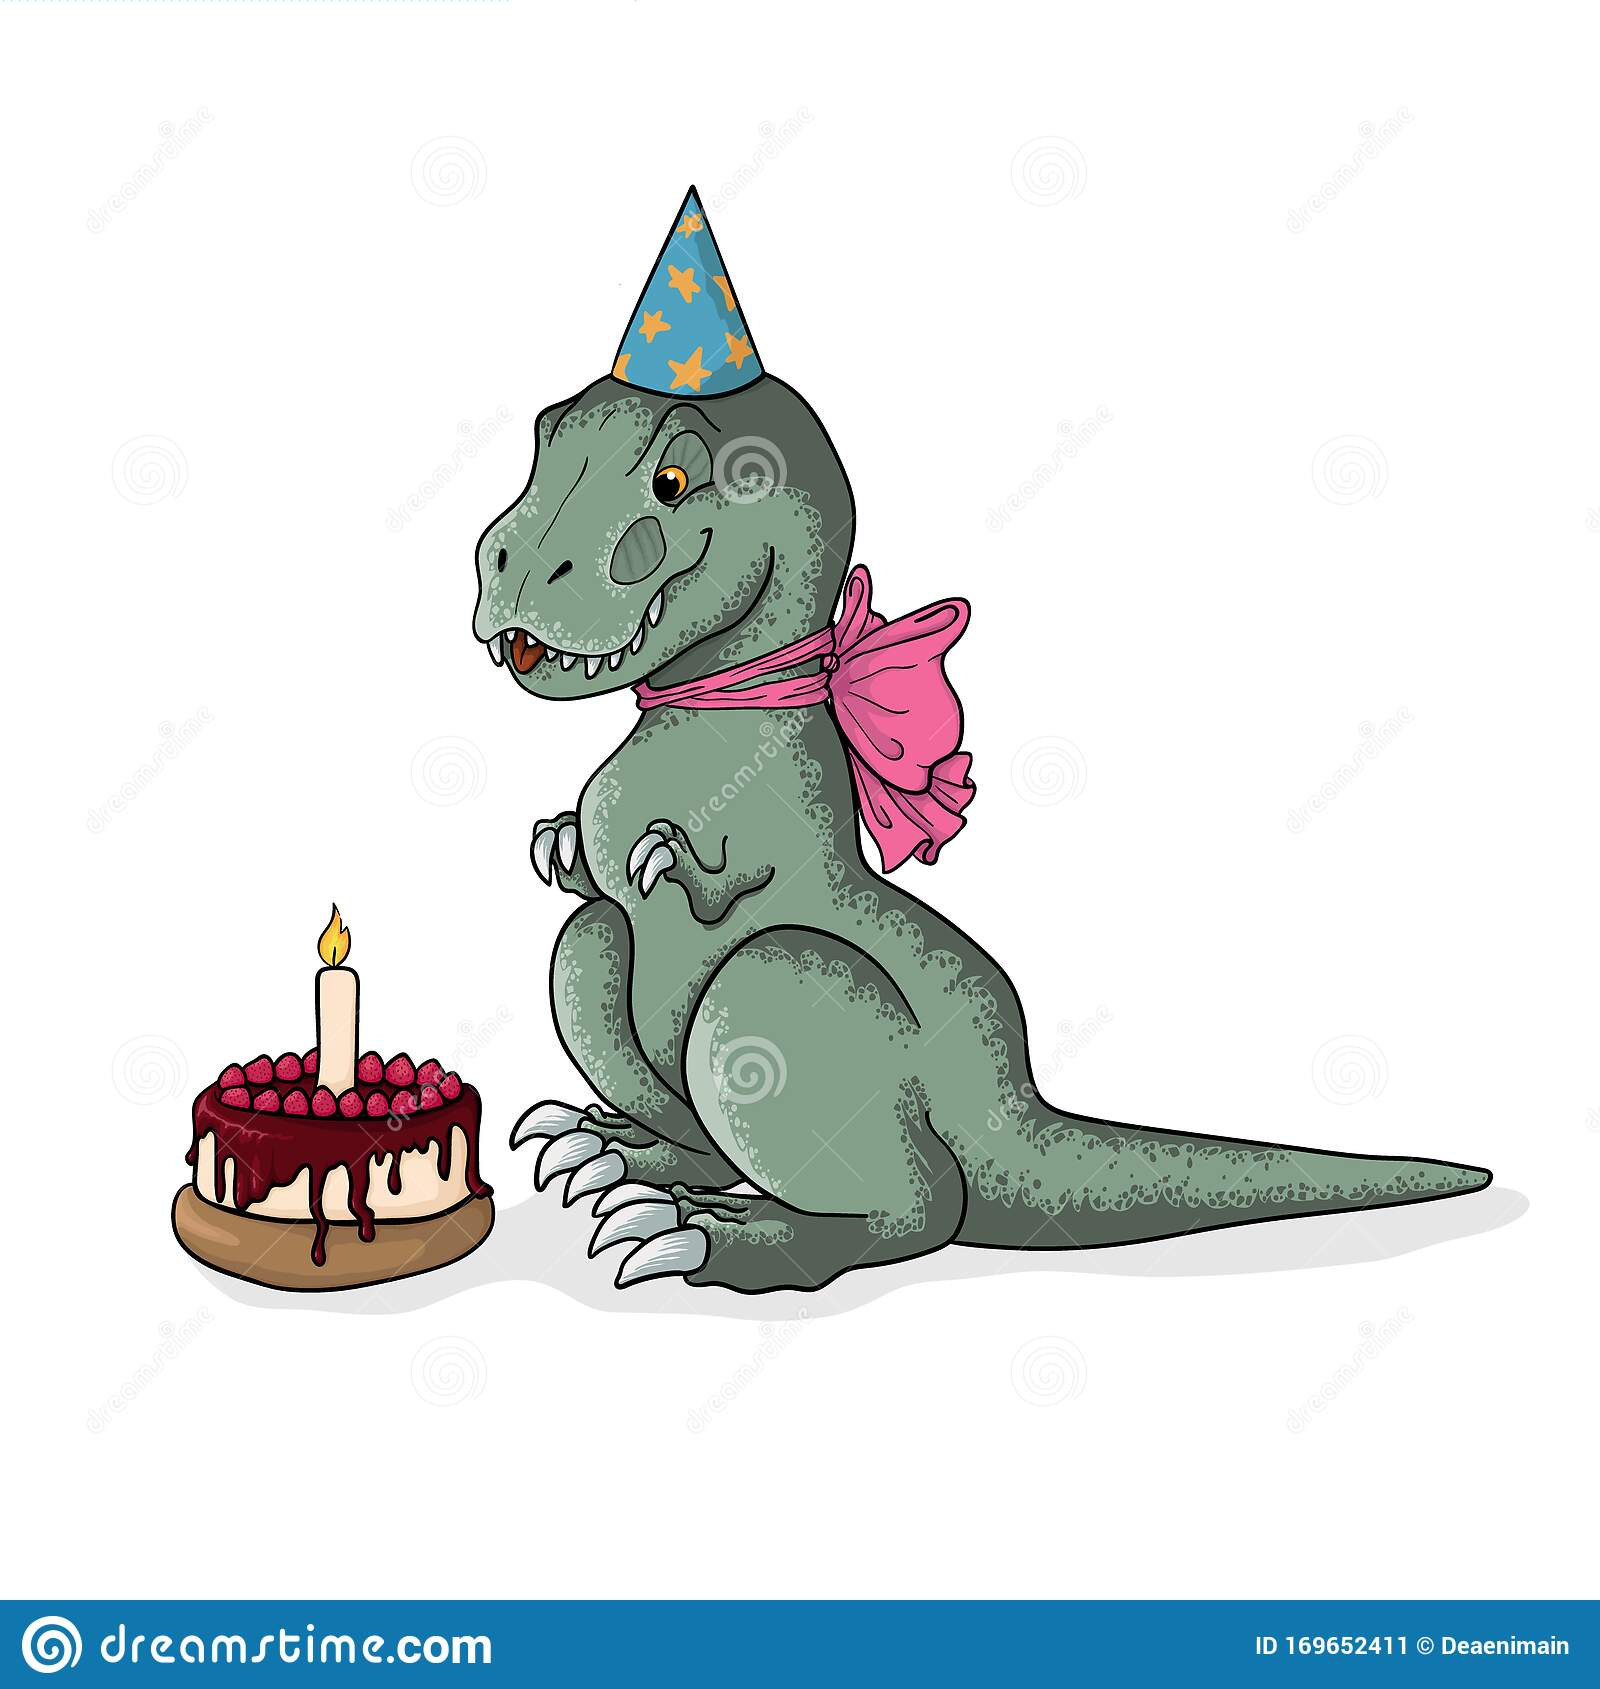 Astounding Cute Sitting Tyrannosaurus Rex In Birthday Cap And Pink Bow With Personalised Birthday Cards Paralily Jamesorg